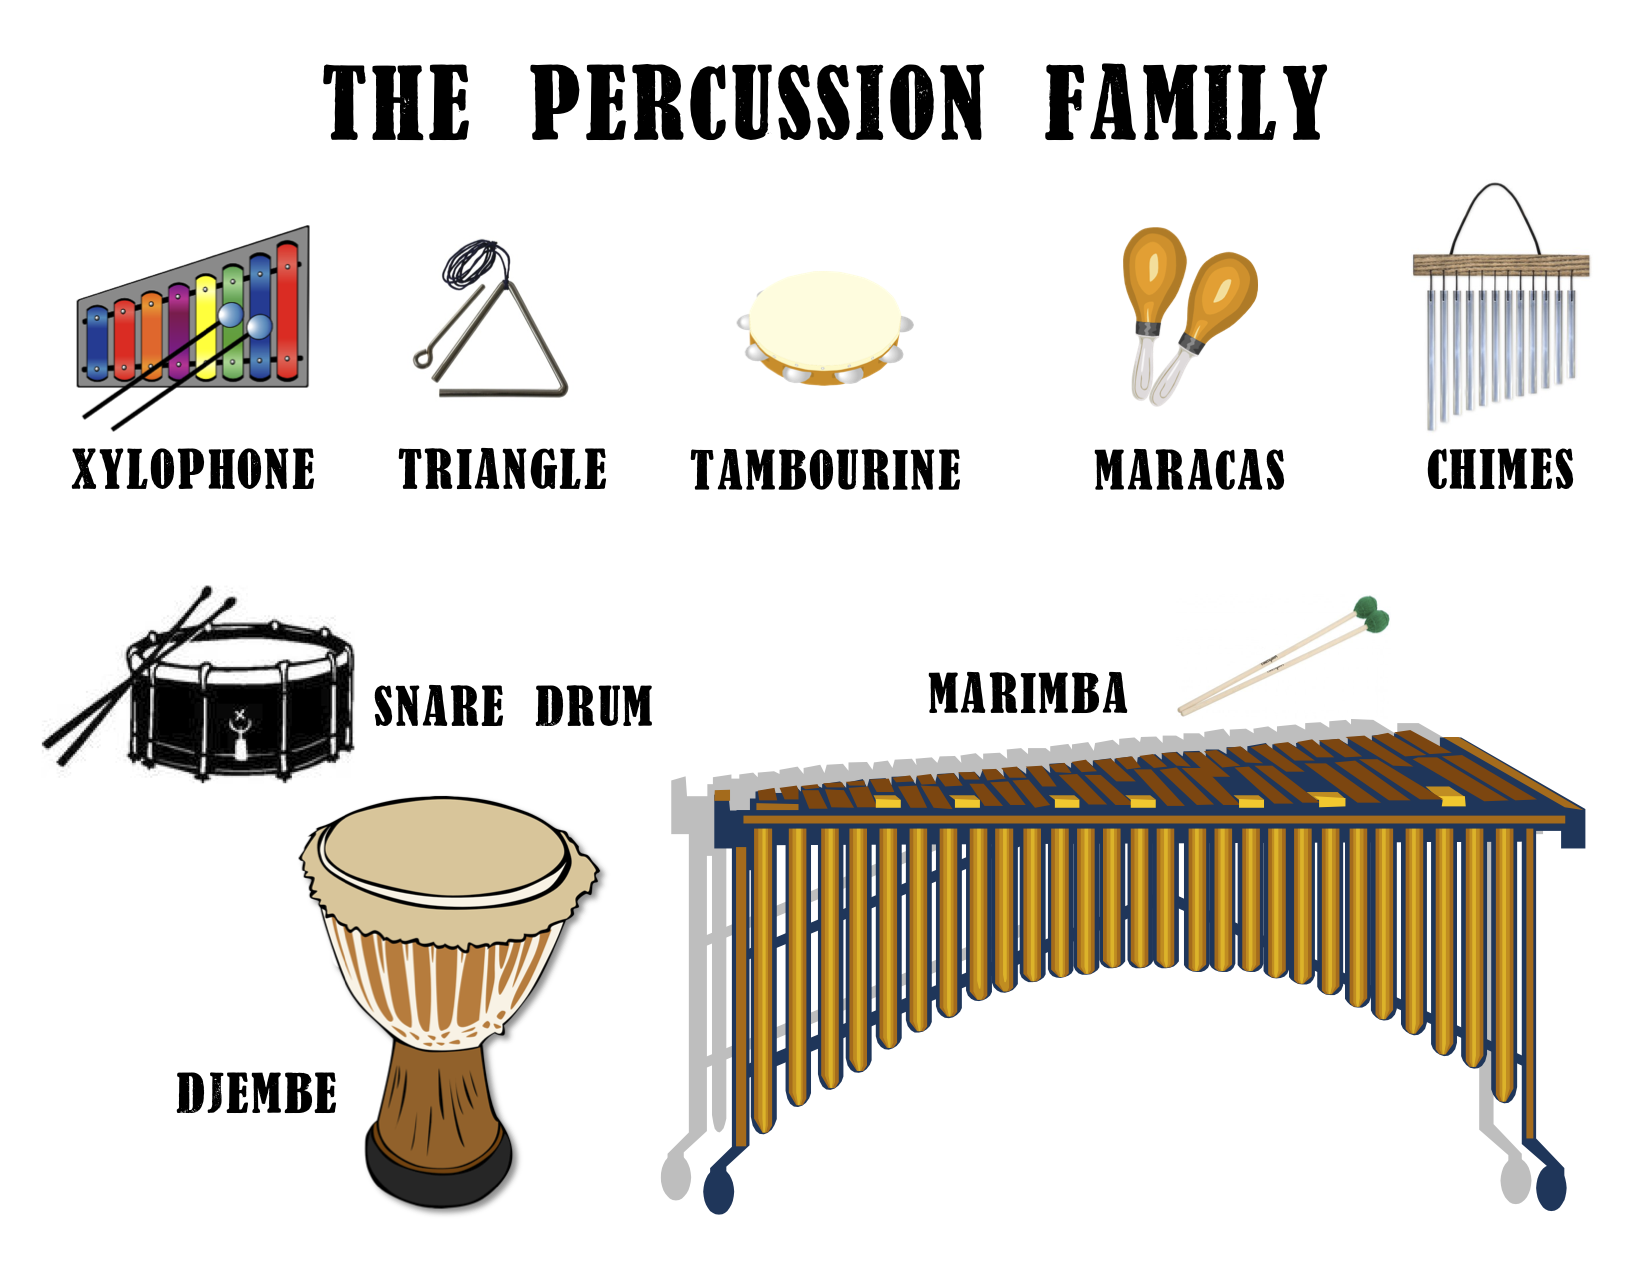 the percussion family we make sounds on our percussion instruments